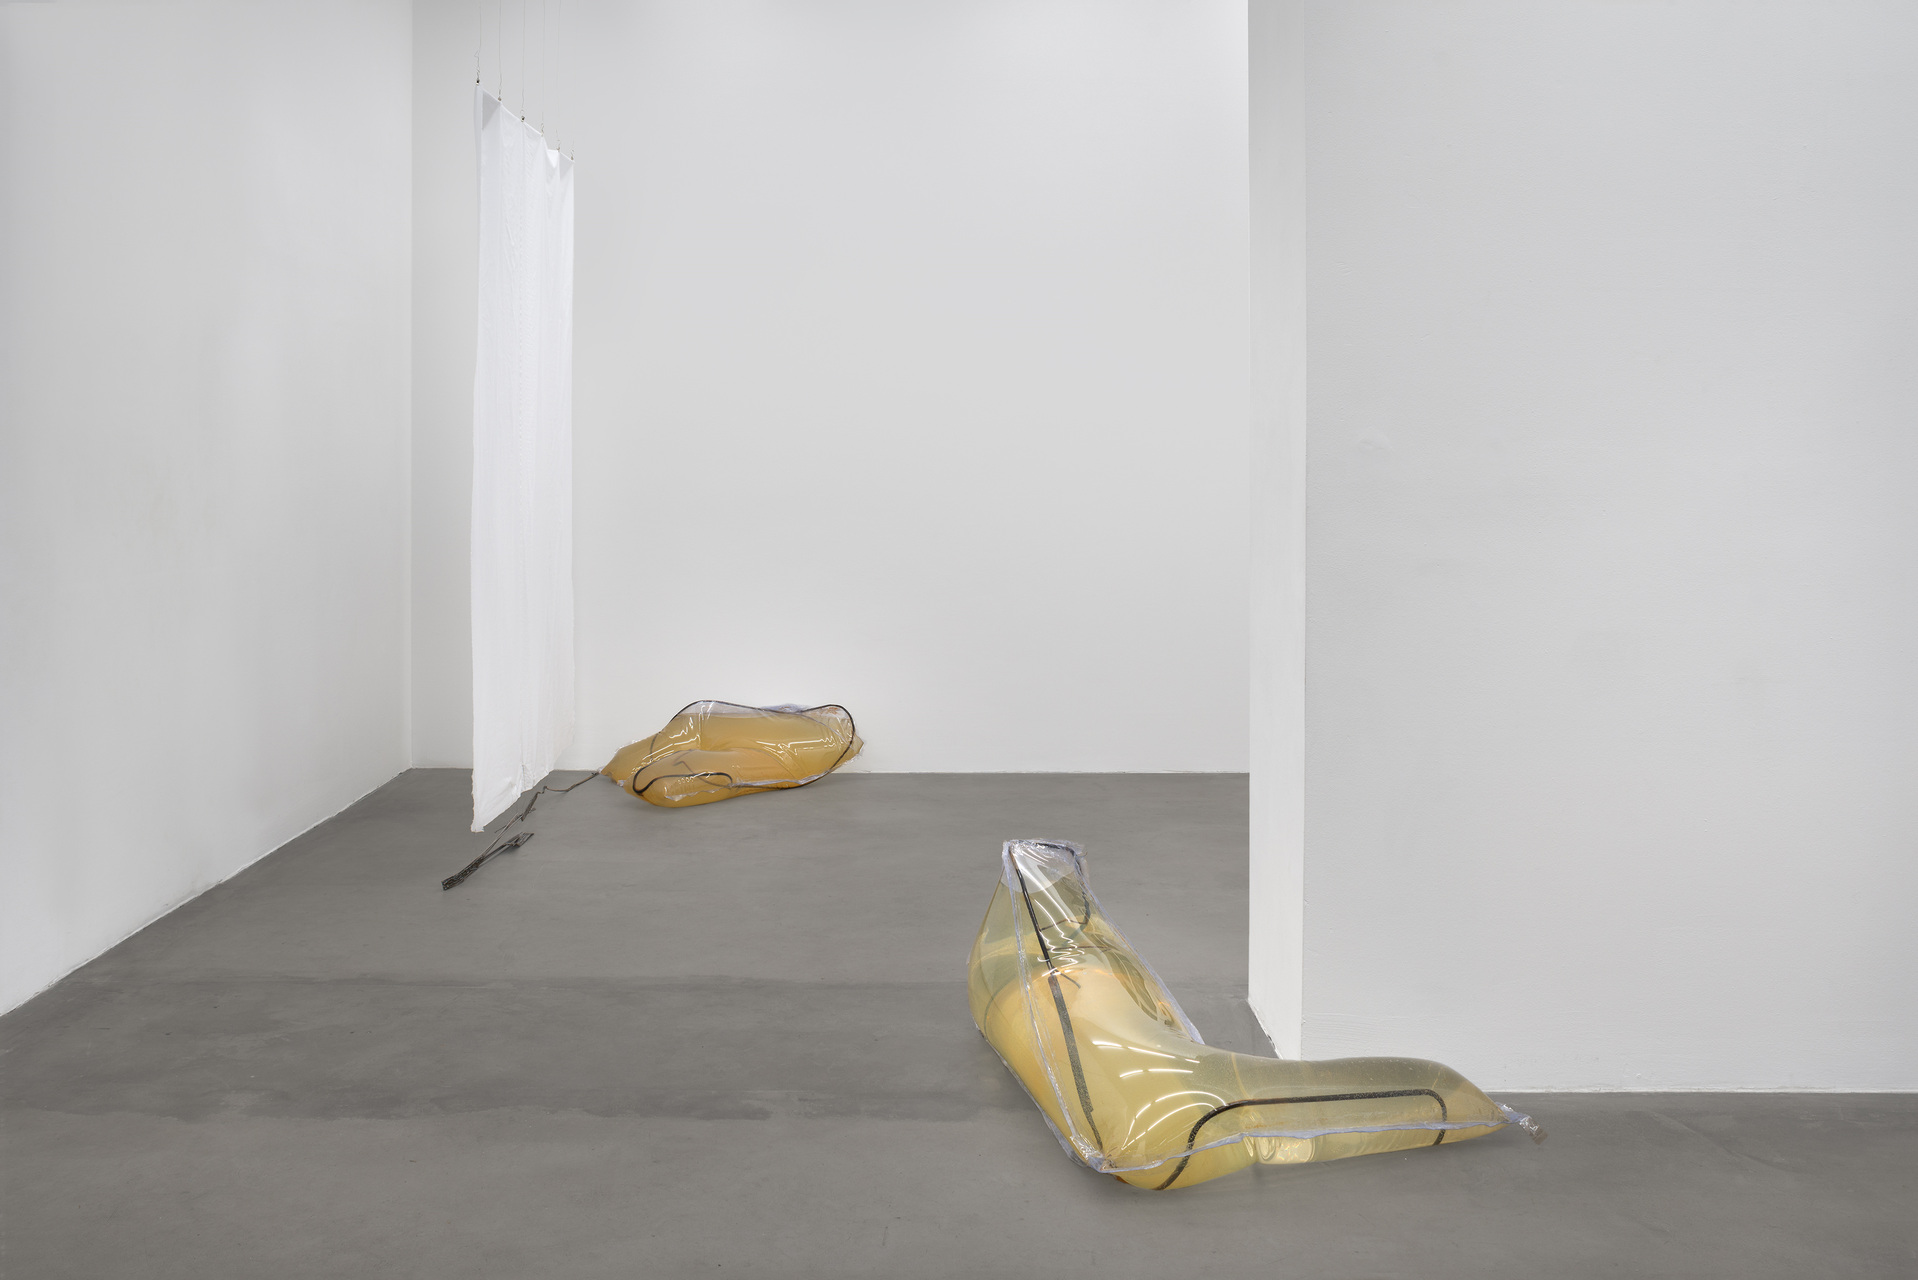 OB_Installation view_Cannibals_2015_Photocredit_Joachim Schulz_Courtesy Croy Nielsen